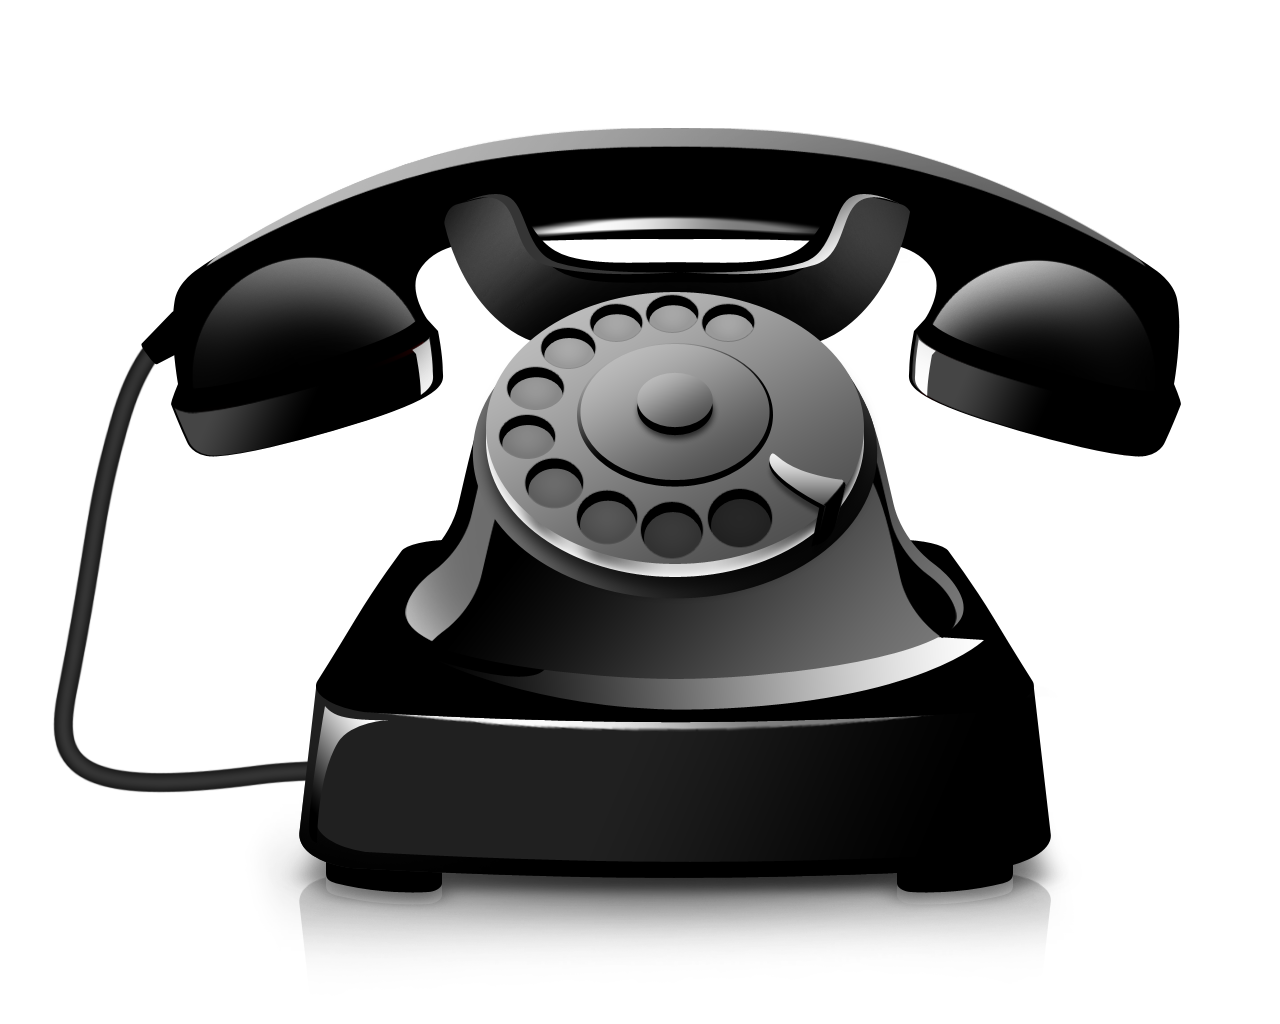 Telephone PNG HD Images - 136876